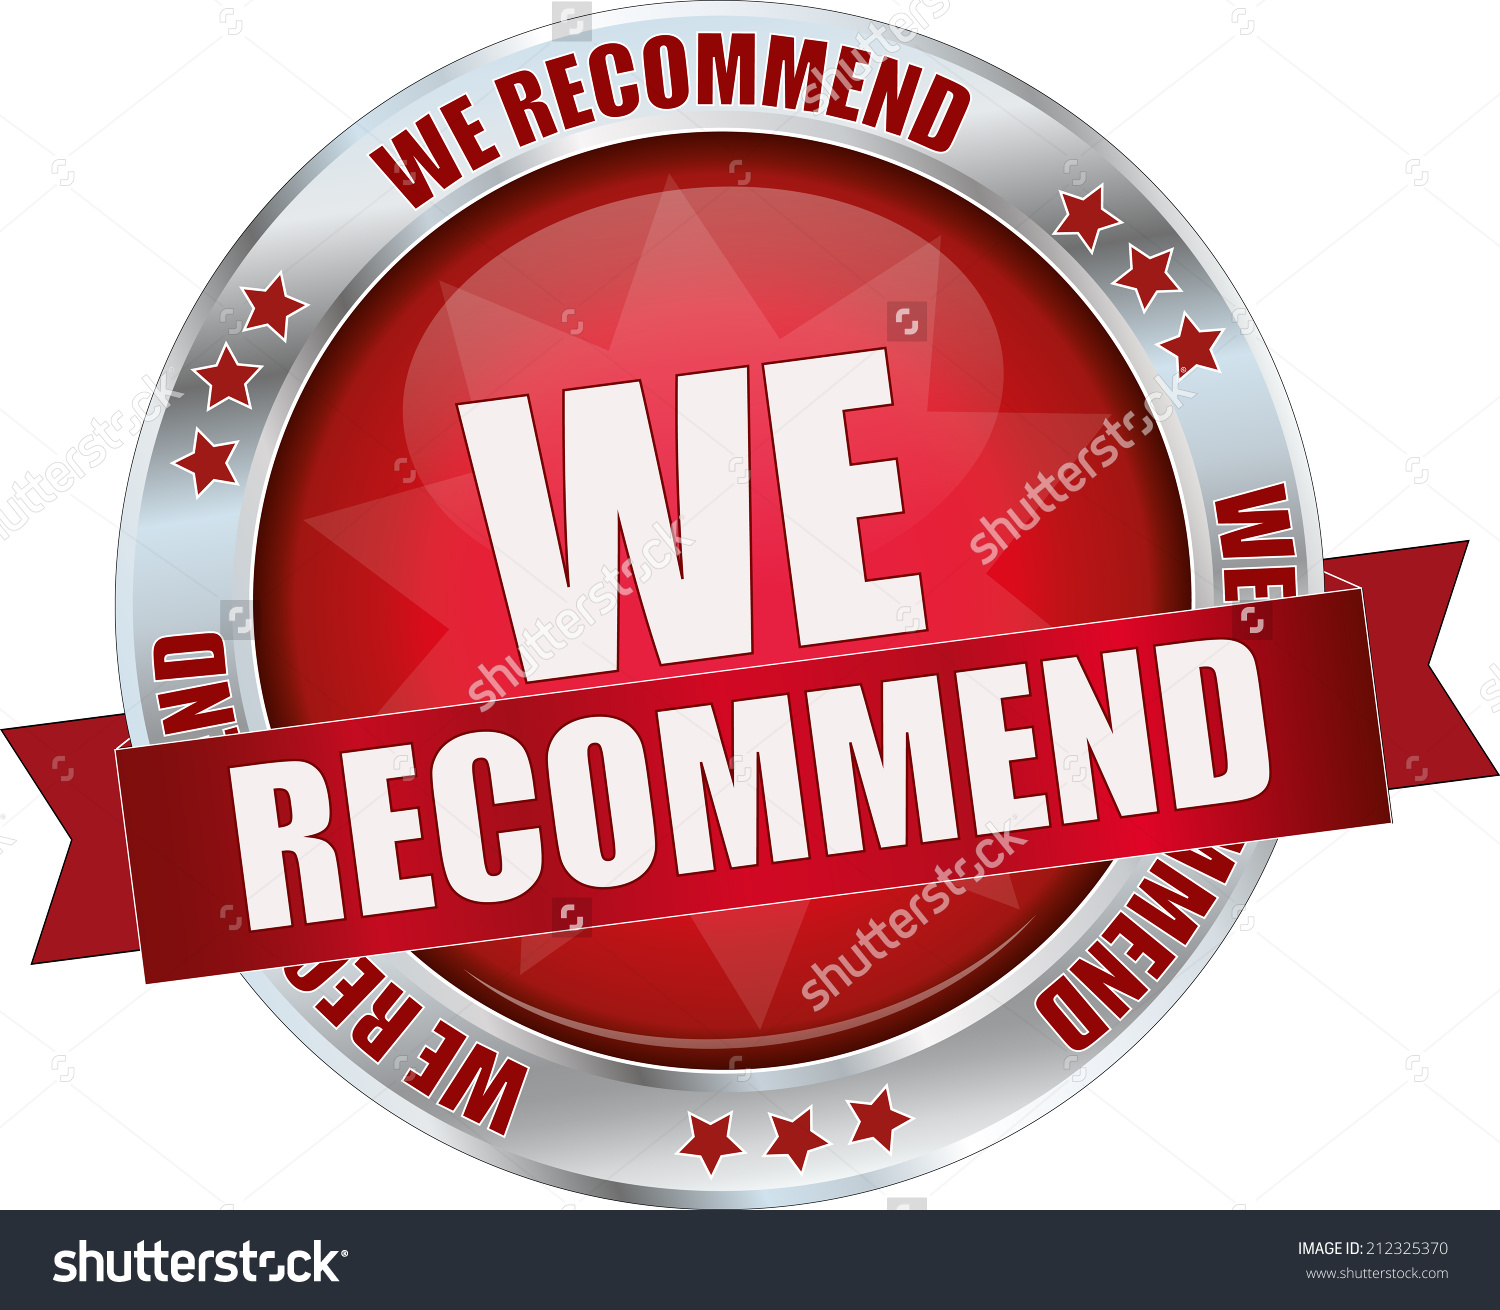 Recommendation clipart png Recommendation Clipart | Clipart Panda - Free Clipart Images png